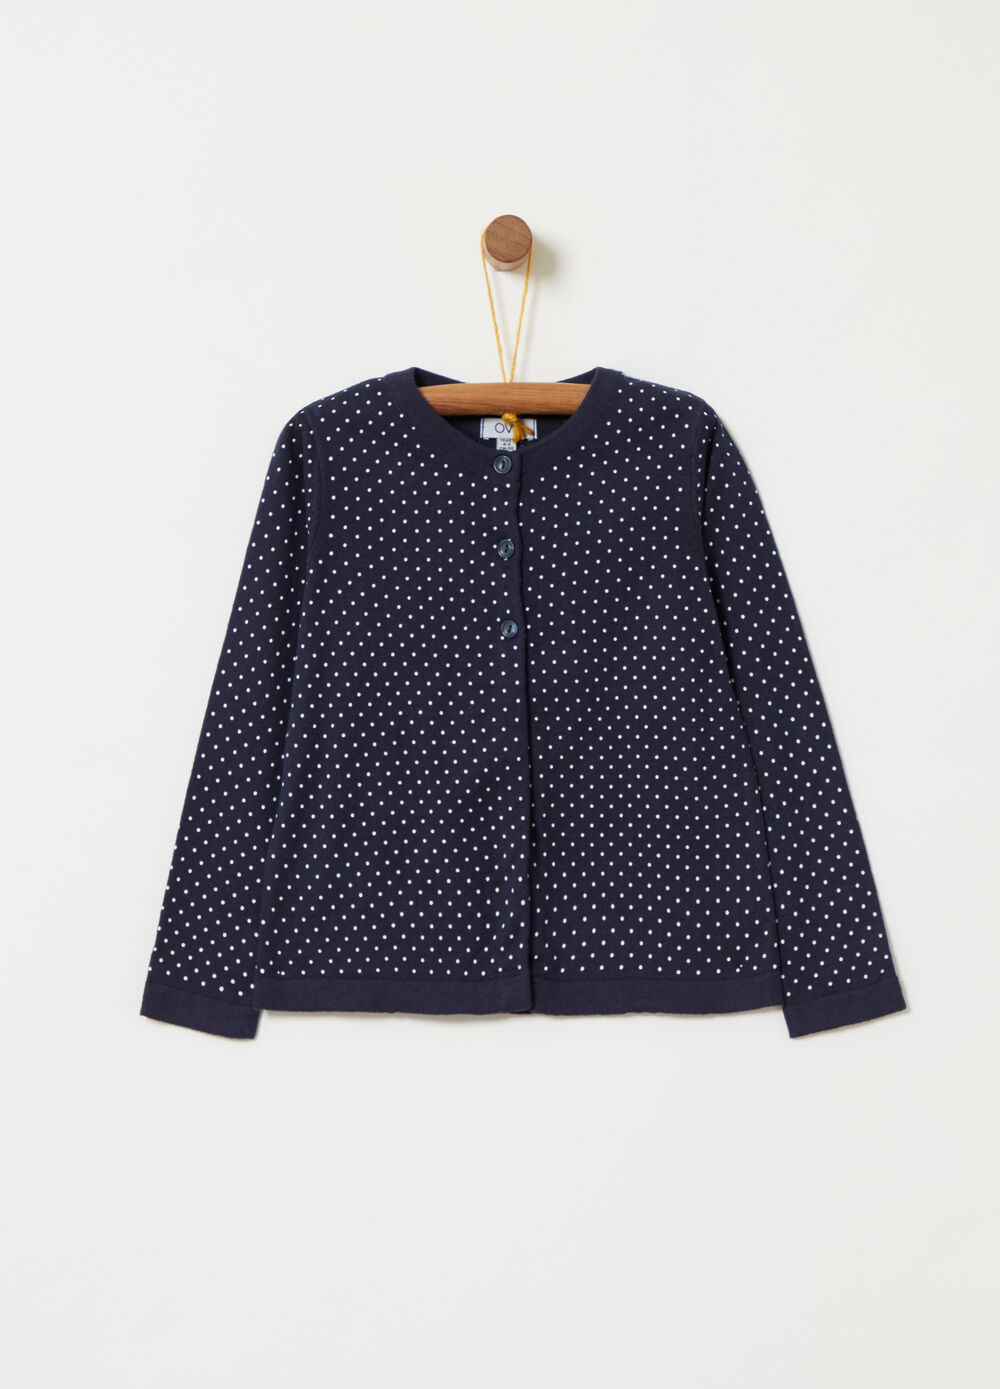 Cotton cardigan with micro polka dot pattern